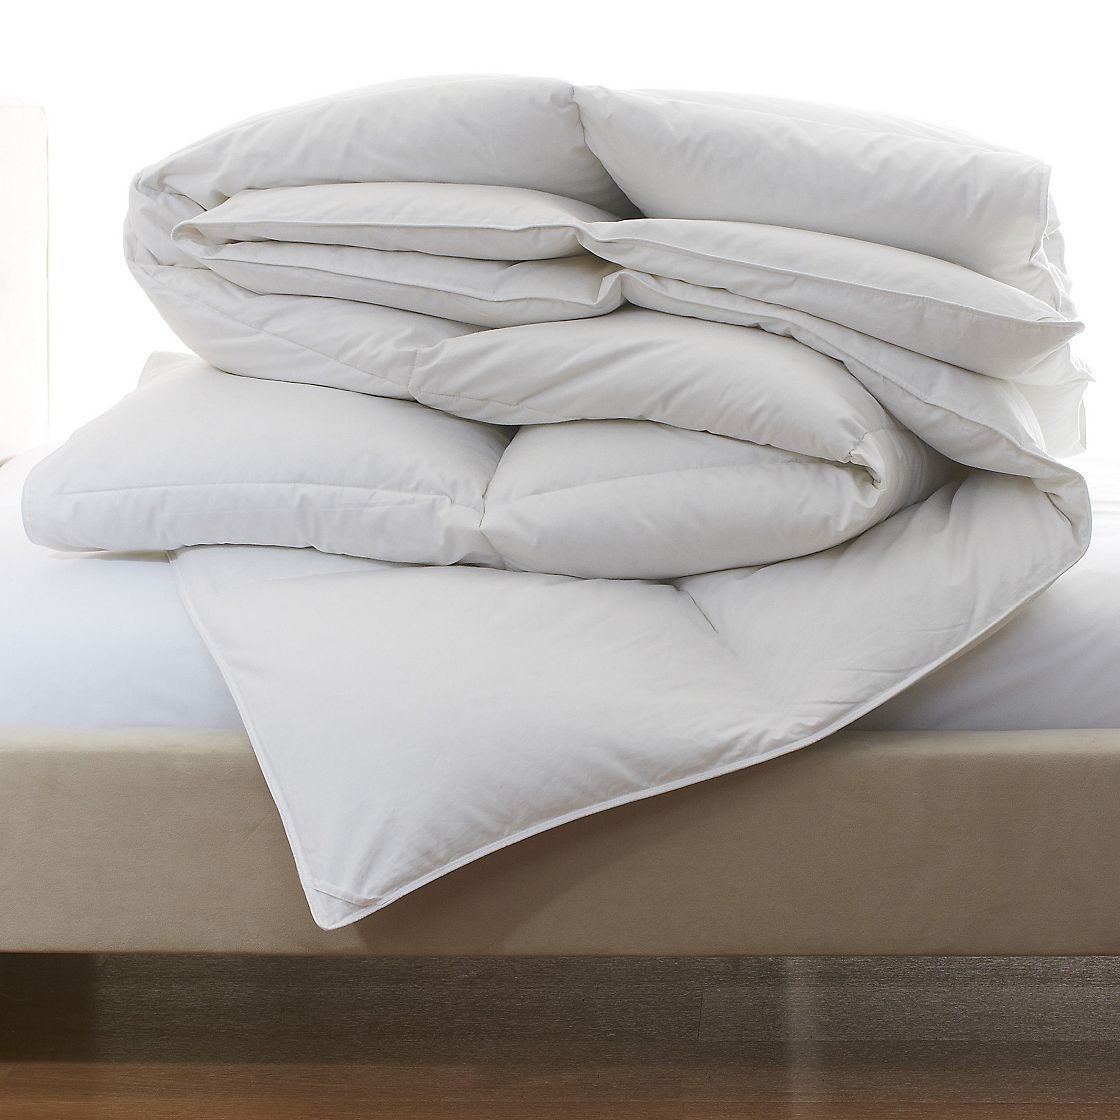 Legends® Geneva Hungarian Down Comforter (6 geese a laying) | The Company Store | $309